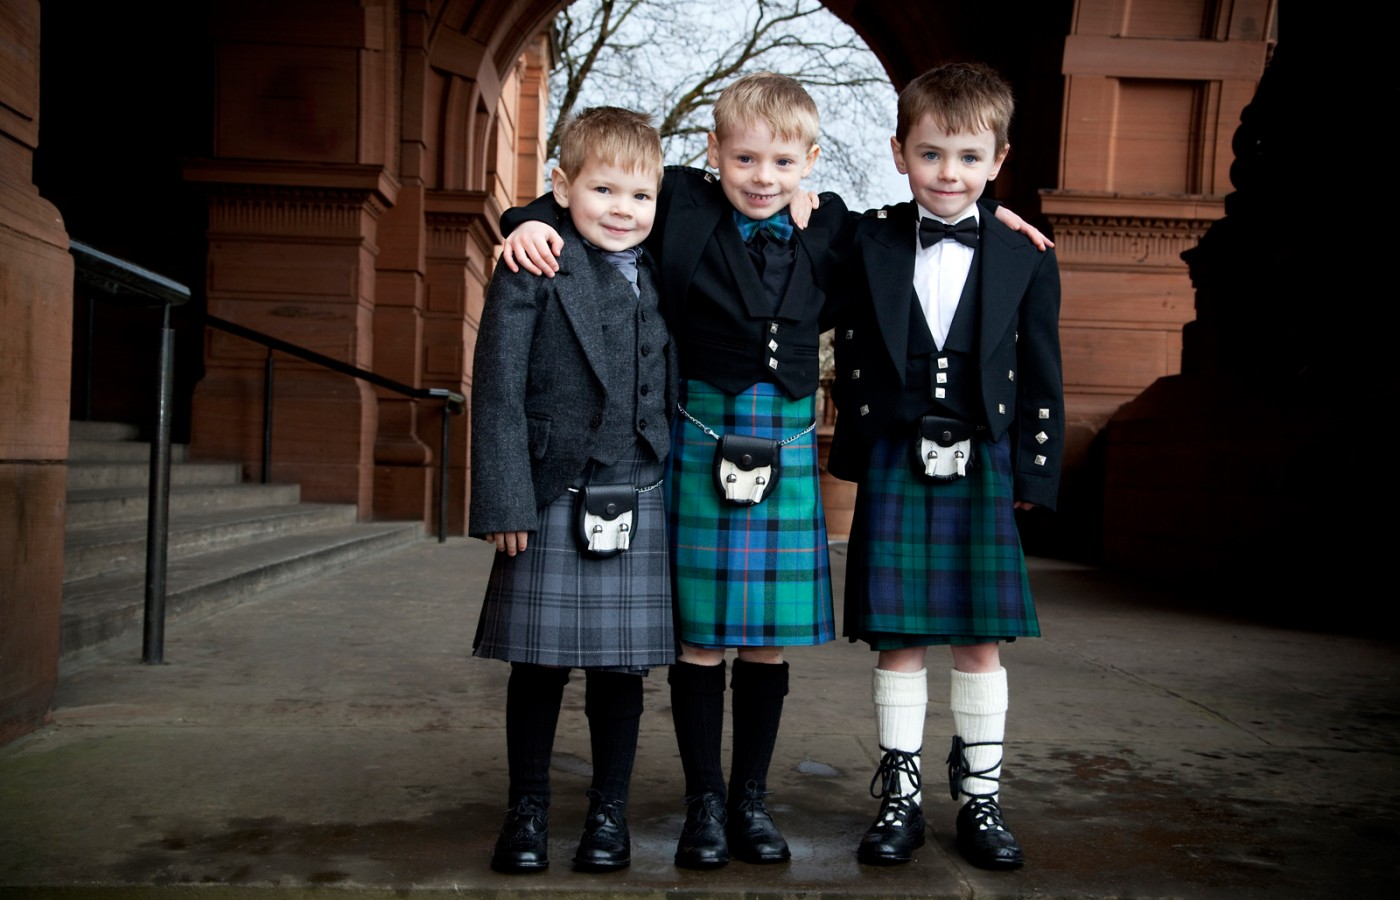 Baby Kilts Amp Kilts For Toddlers What Are The Best Kilts